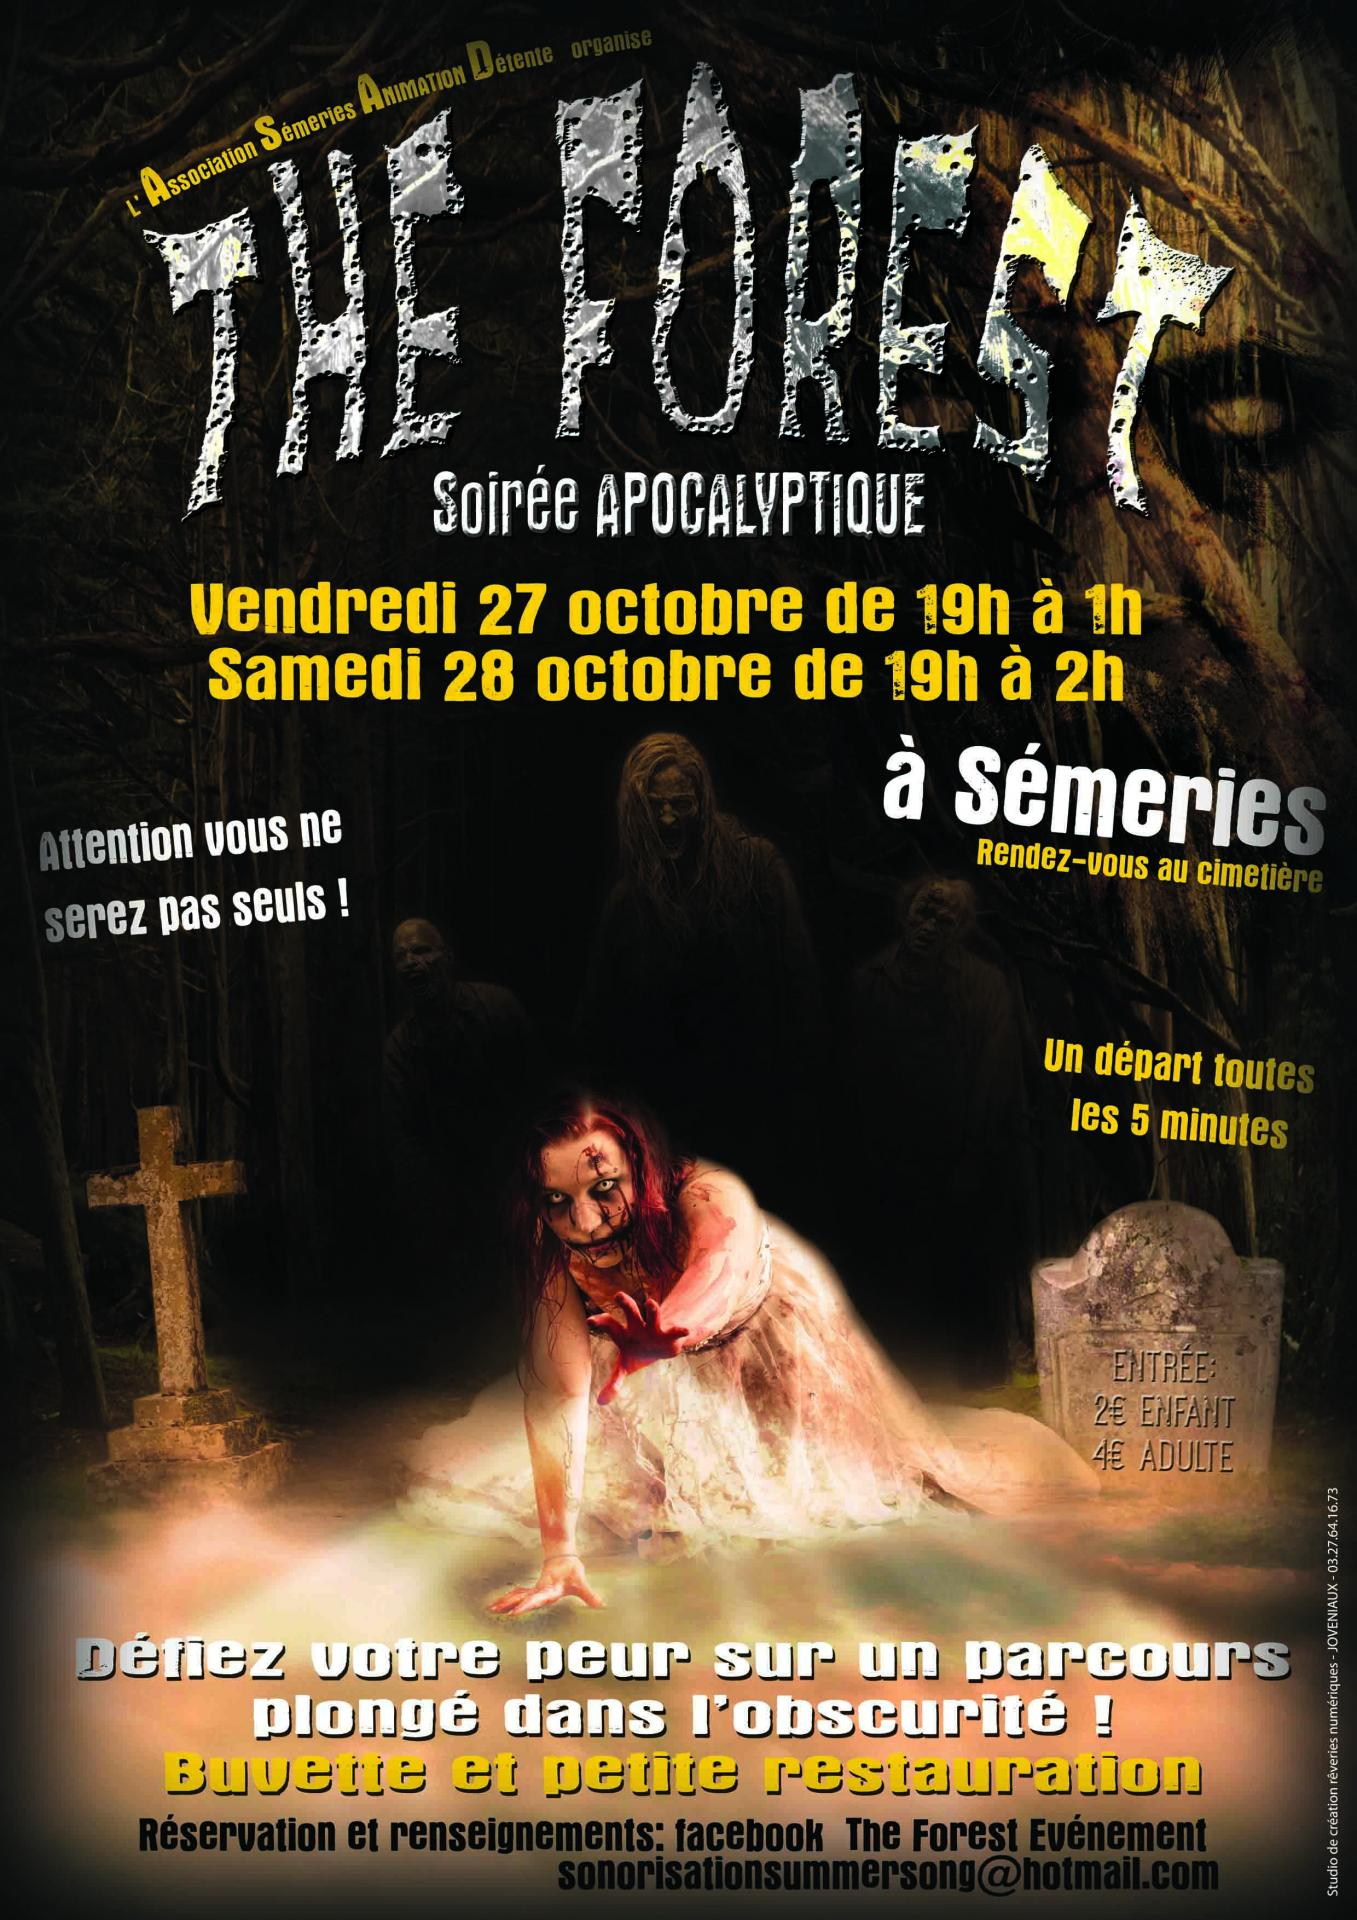 Joveniaux graphiste studio reveries numerique semeries the forest